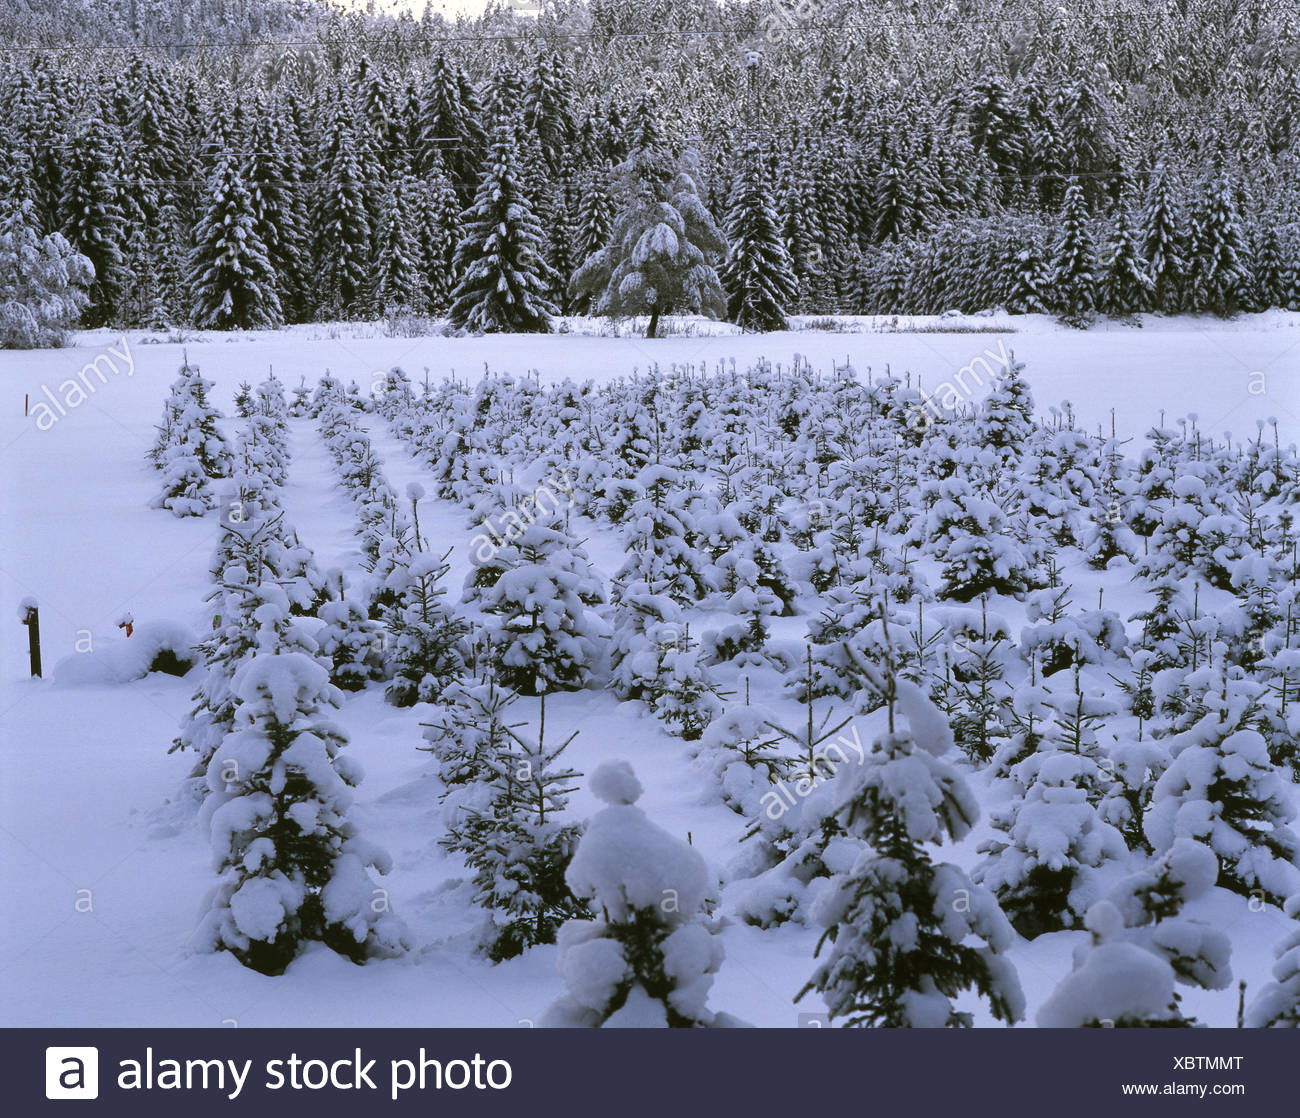 Nursery garden (tree breeding), conifers / Christmas trees, winters - Stock Image